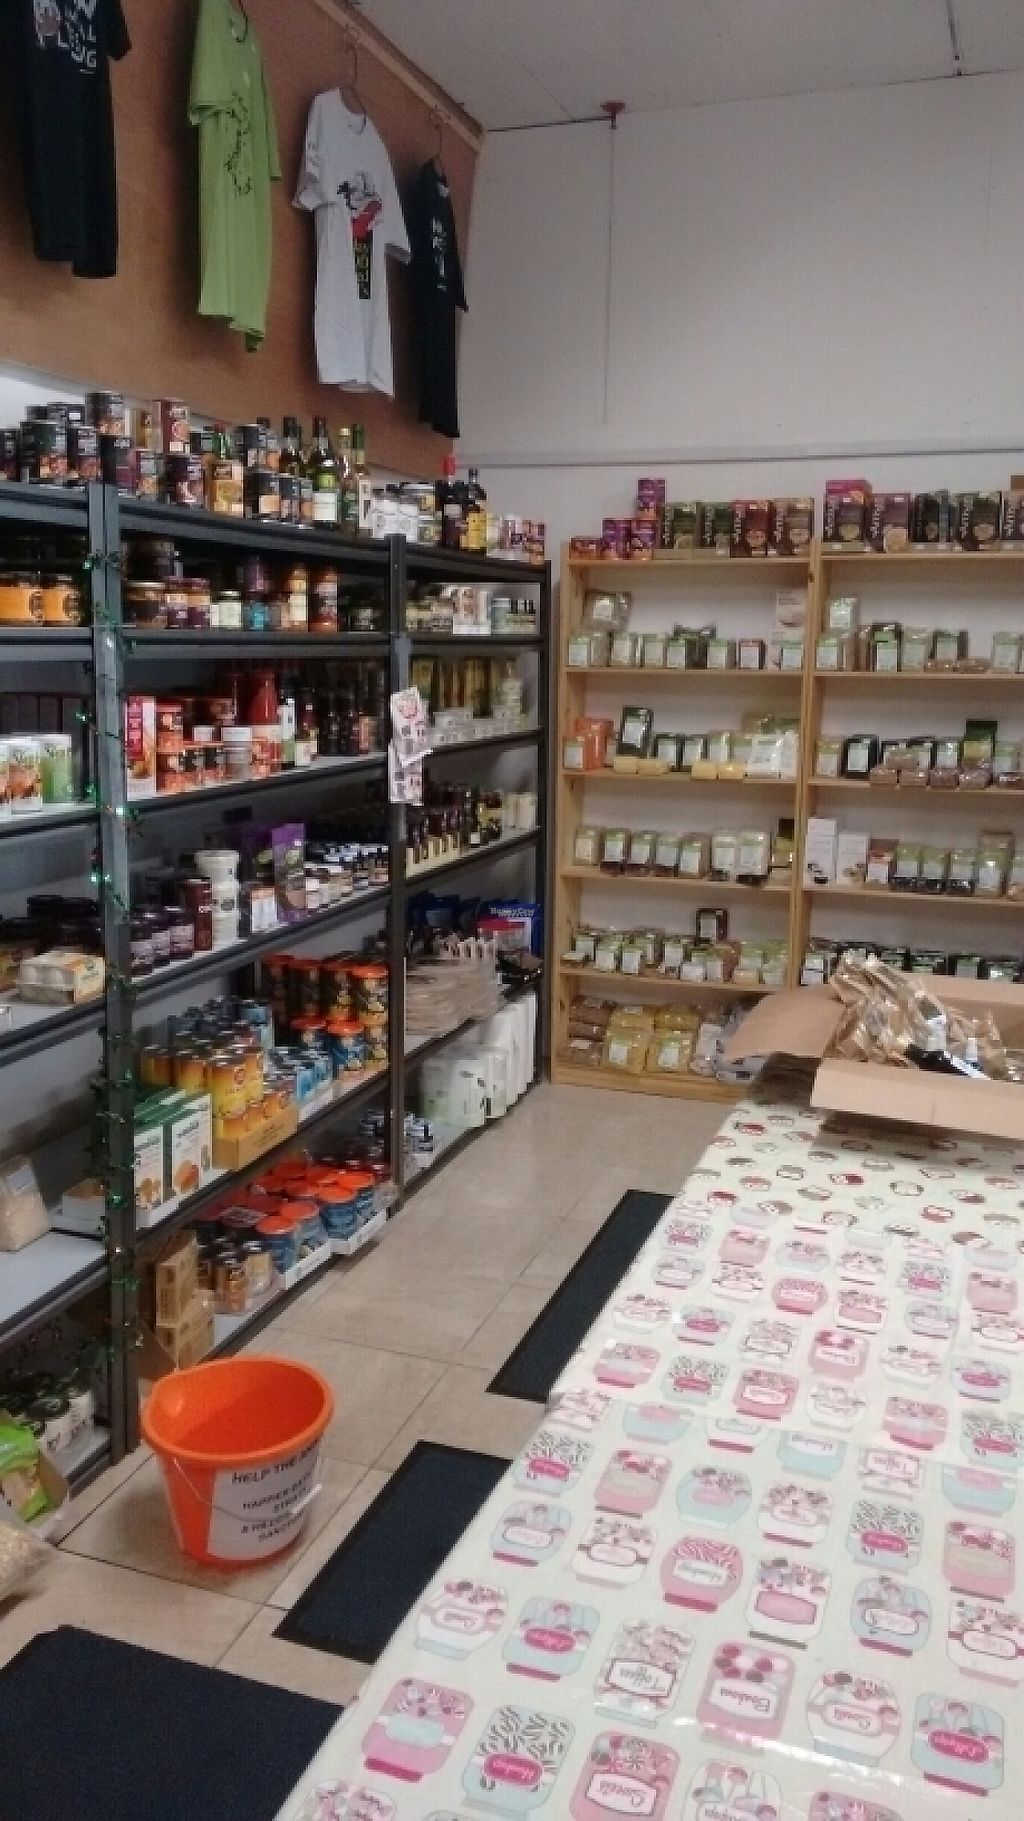 """Photo of Alternative Stores  by <a href=""""/members/profile/craigmc"""">craigmc</a> <br/>even more <br/> December 10, 2016  - <a href='/contact/abuse/image/15169/198899'>Report</a>"""